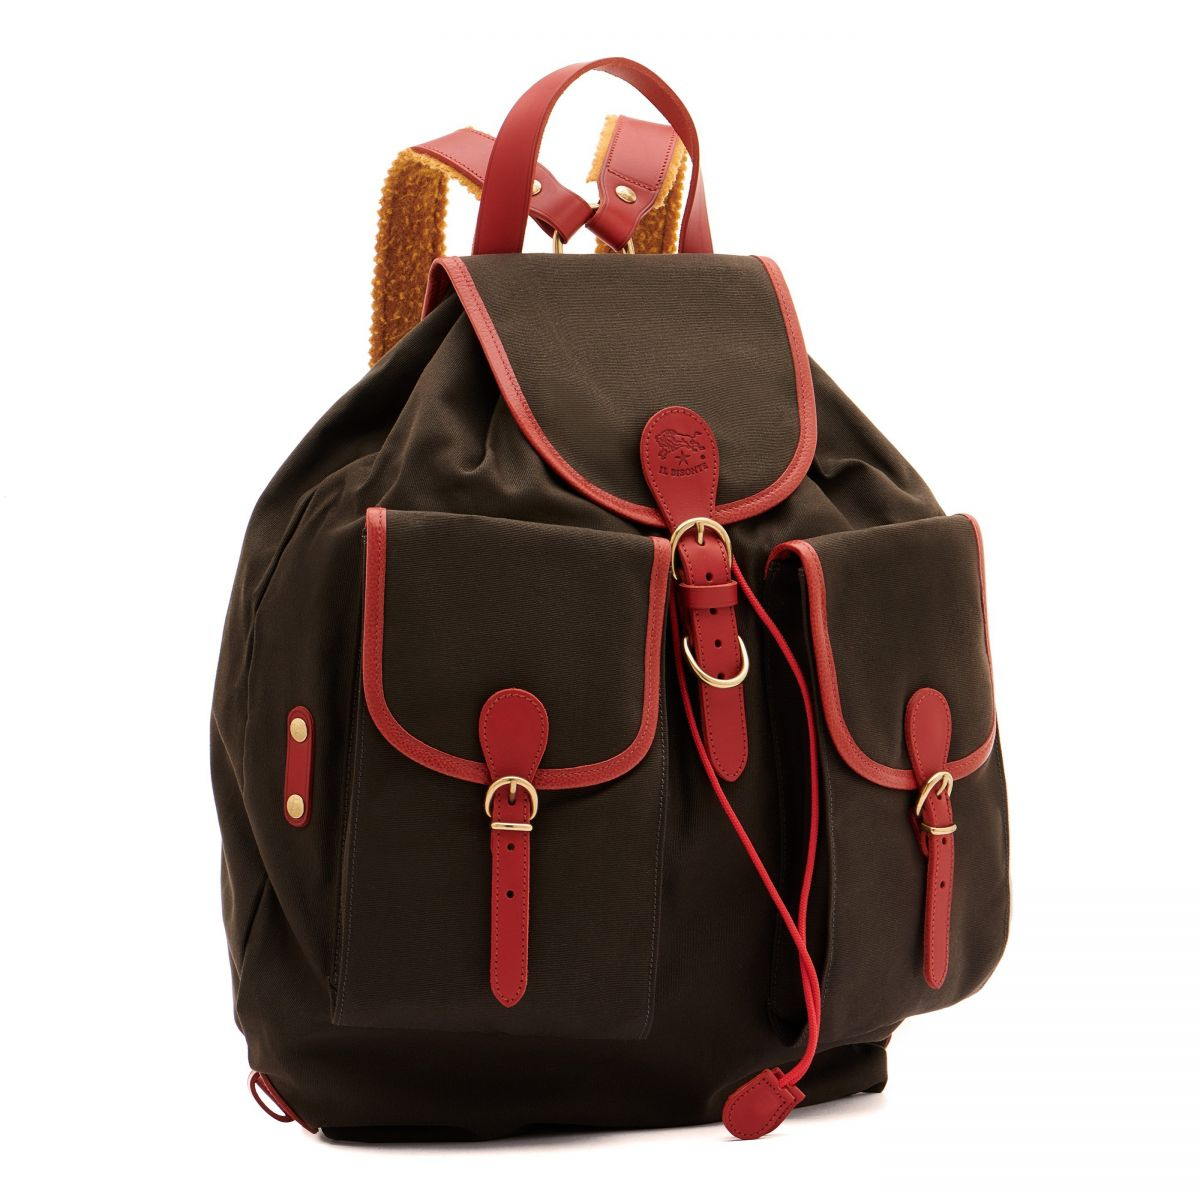 Men's Backpack  in Cotton Canvas BBA051 color Sdraio | Details